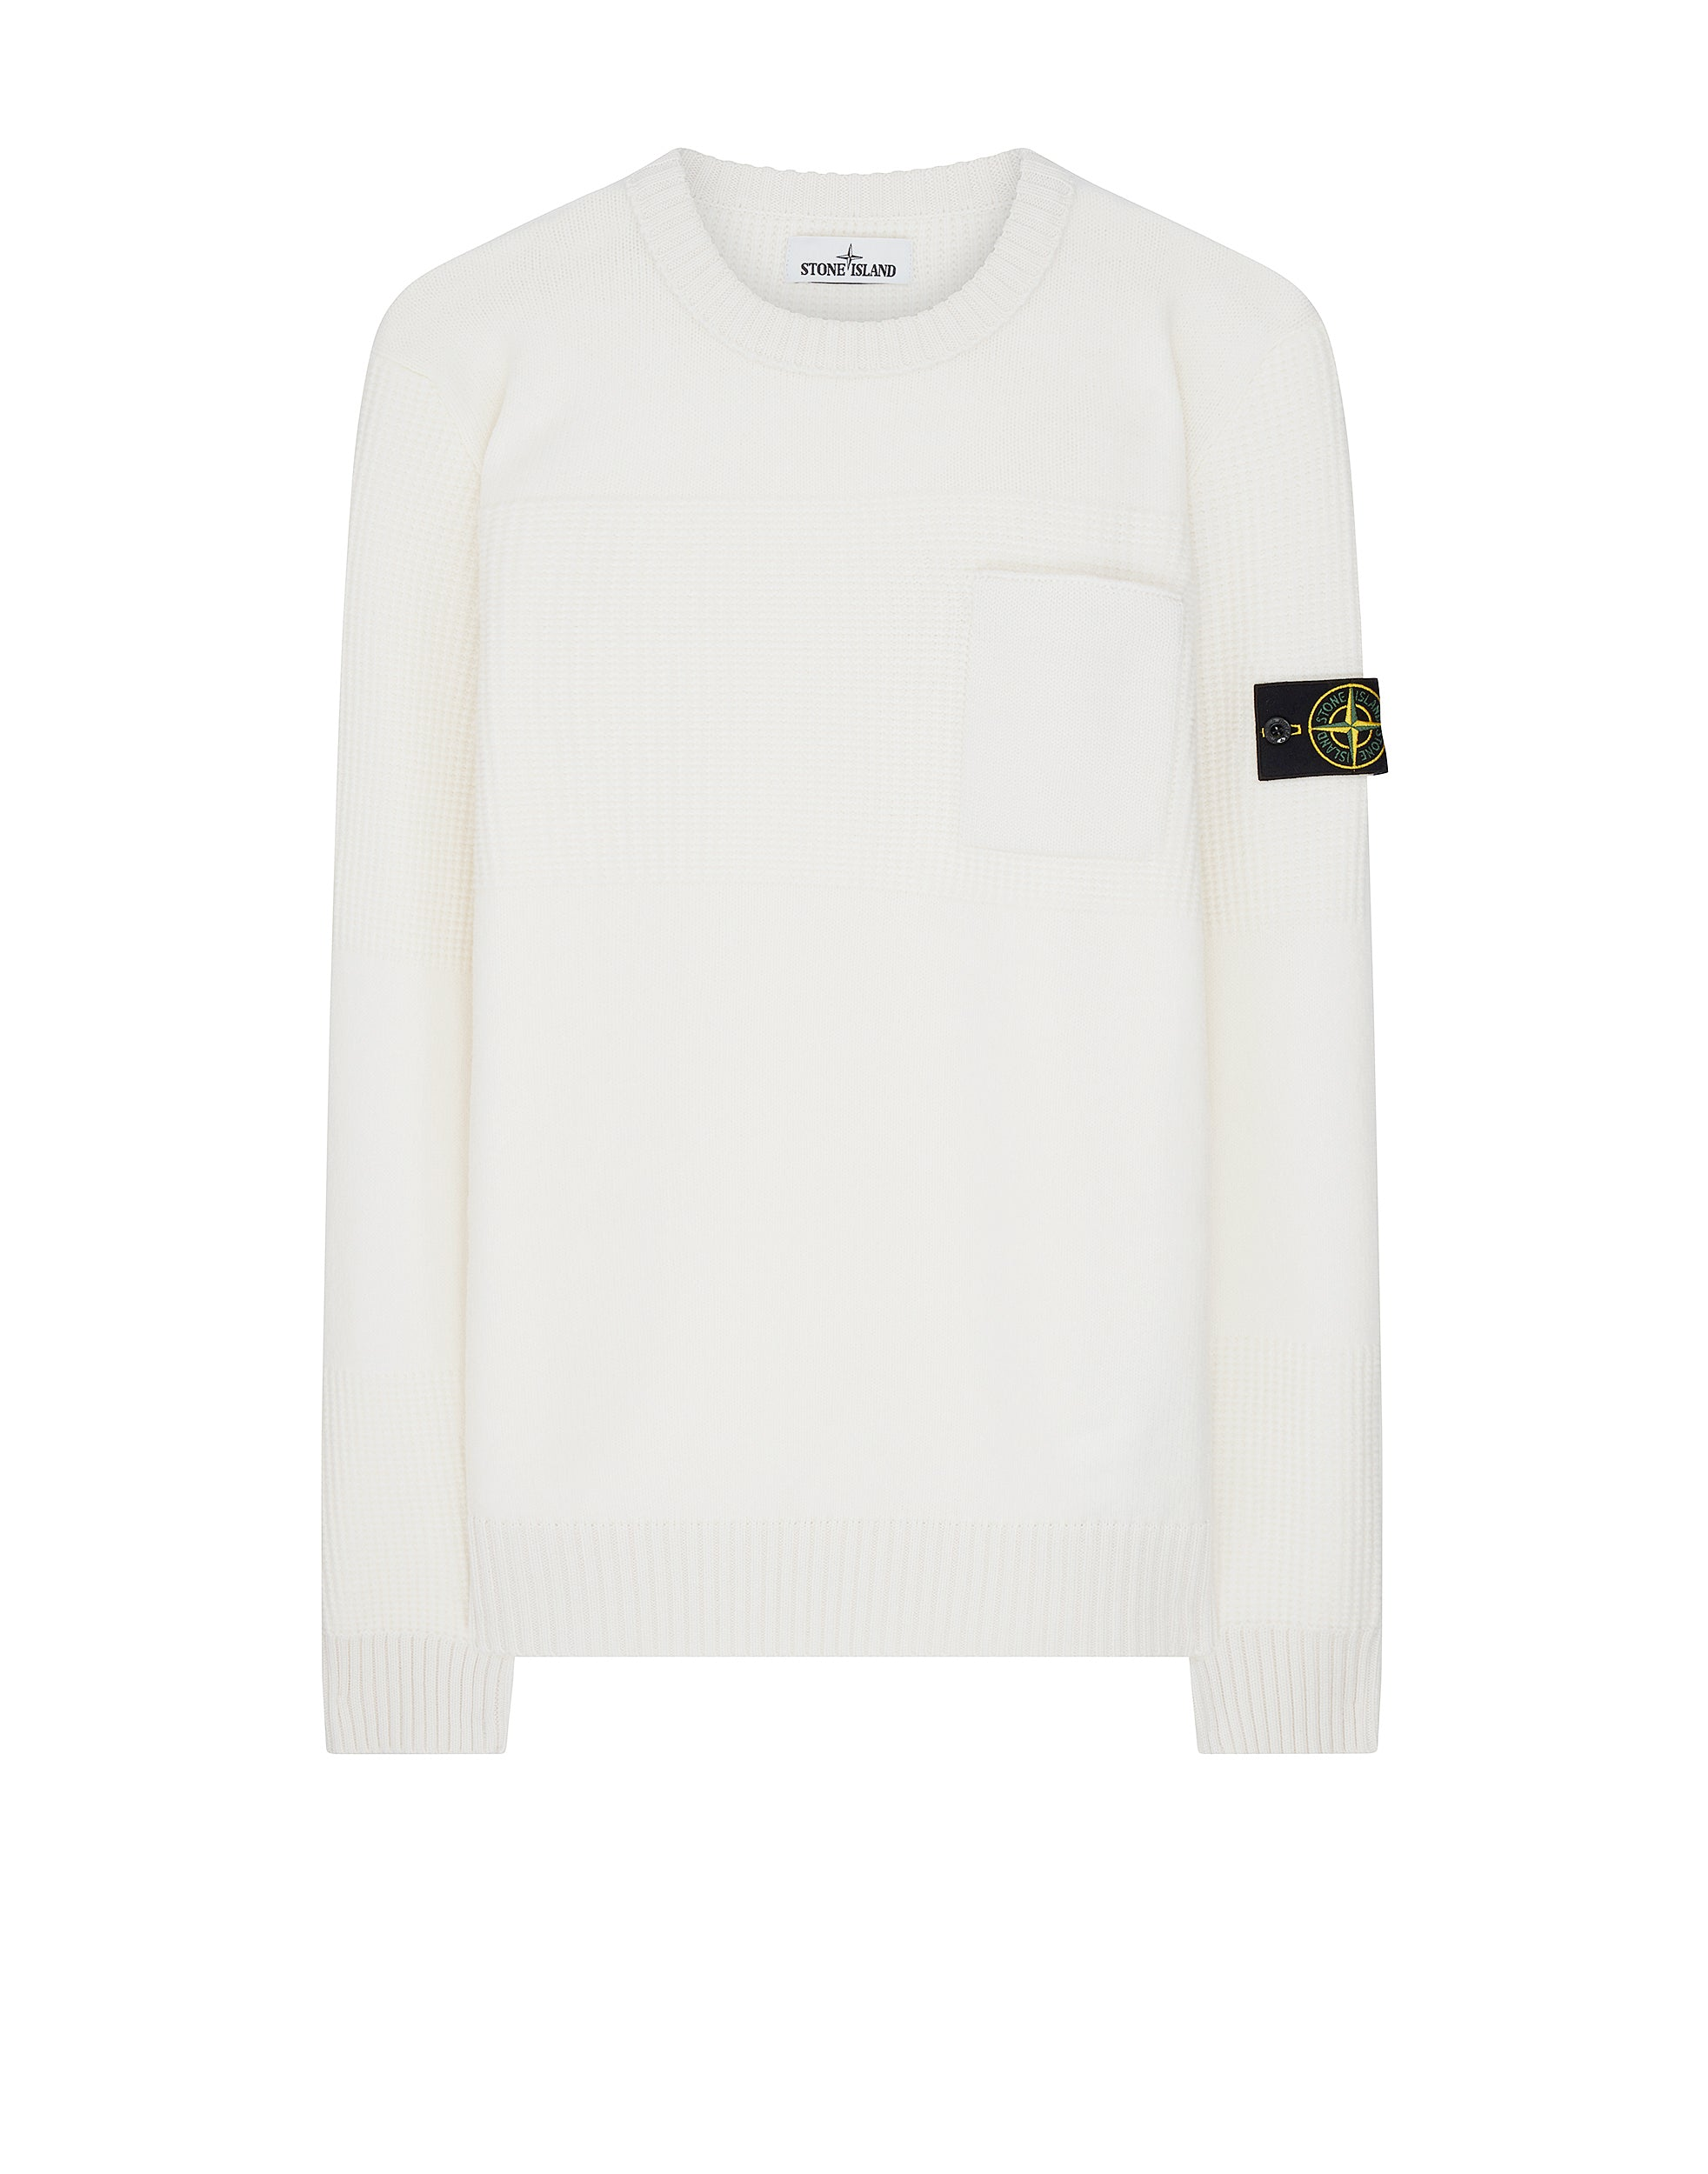 563A2 Wool Pocket Sweatshirt in White